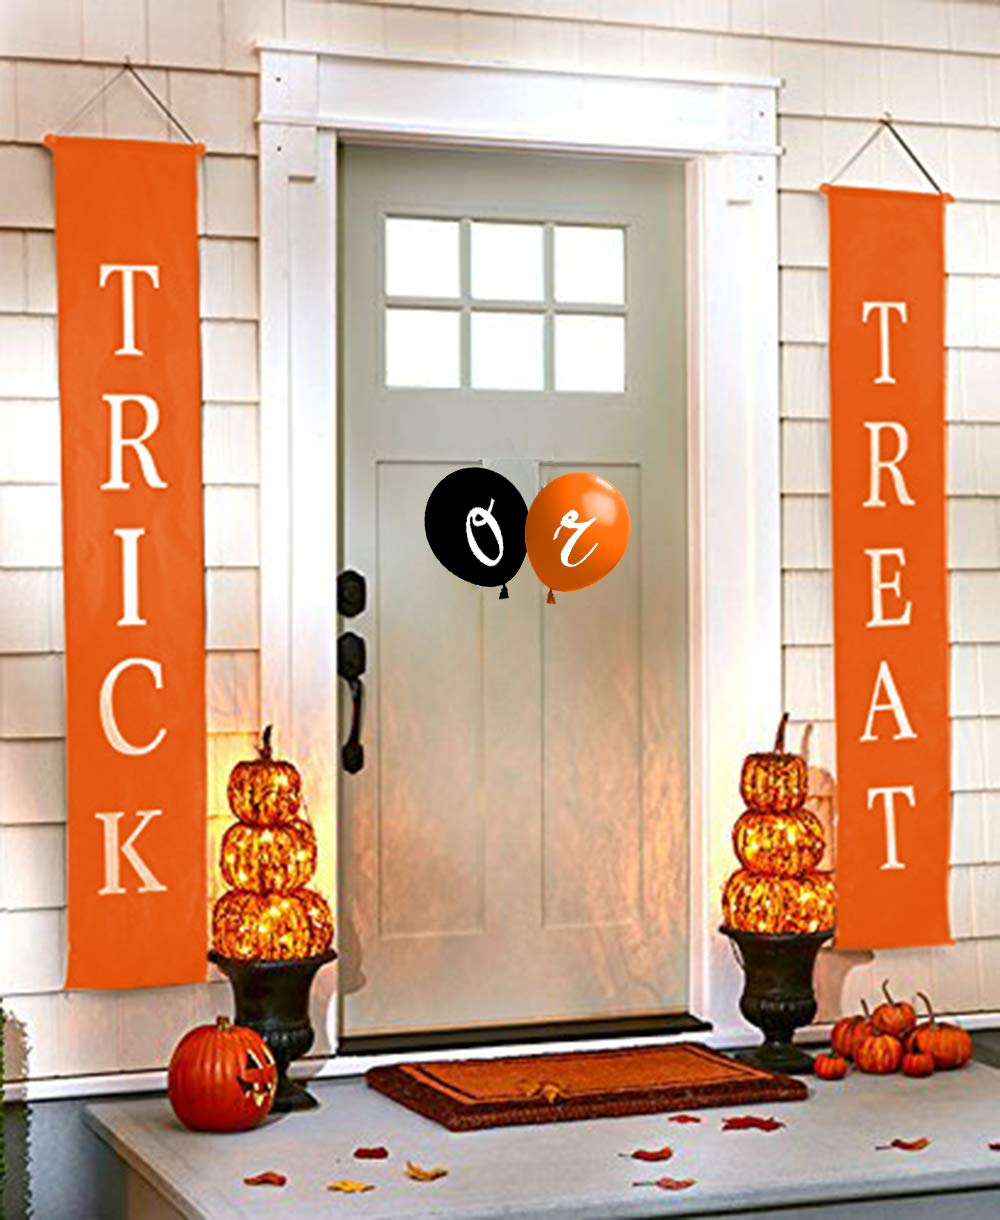 Trick or Treat Banner and Balloons for Halloween Decorations Outdoors/Indoors